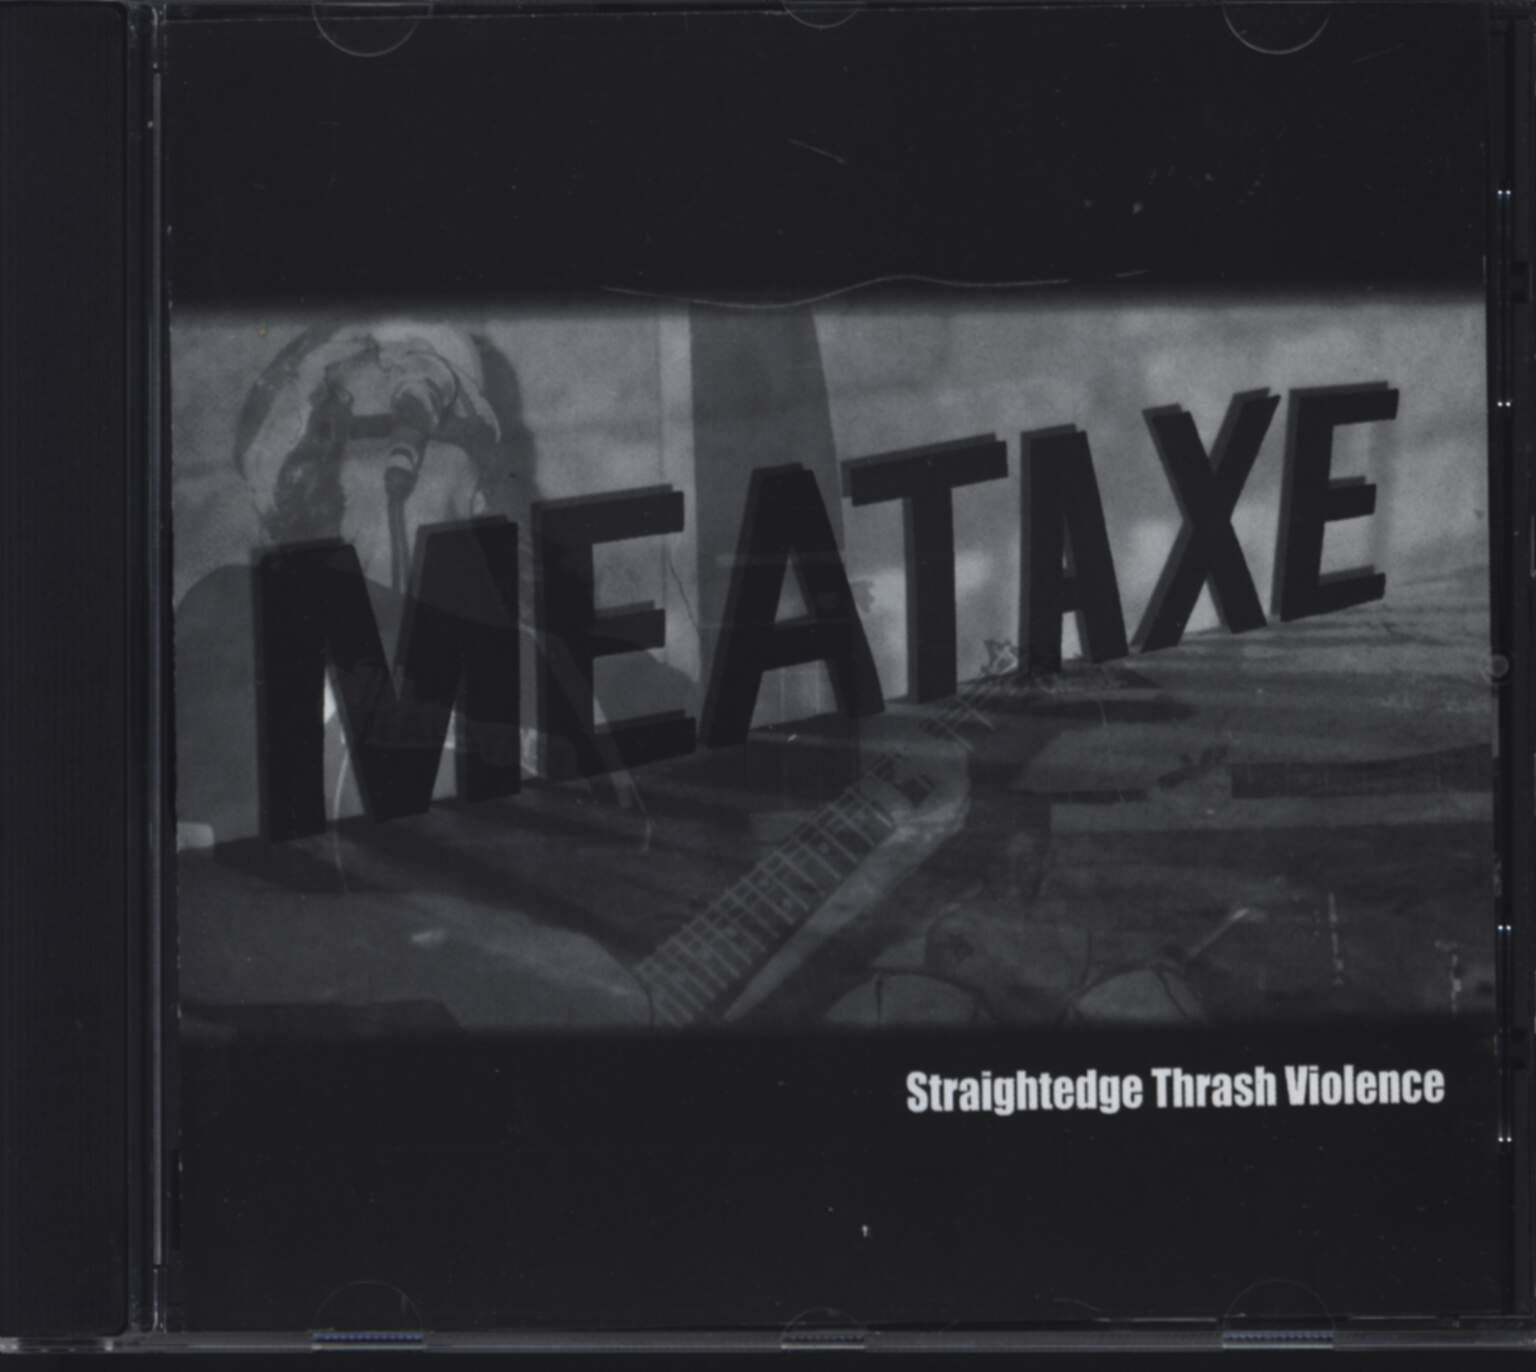 Meataxe: Straightedge Thrash Violence, CD